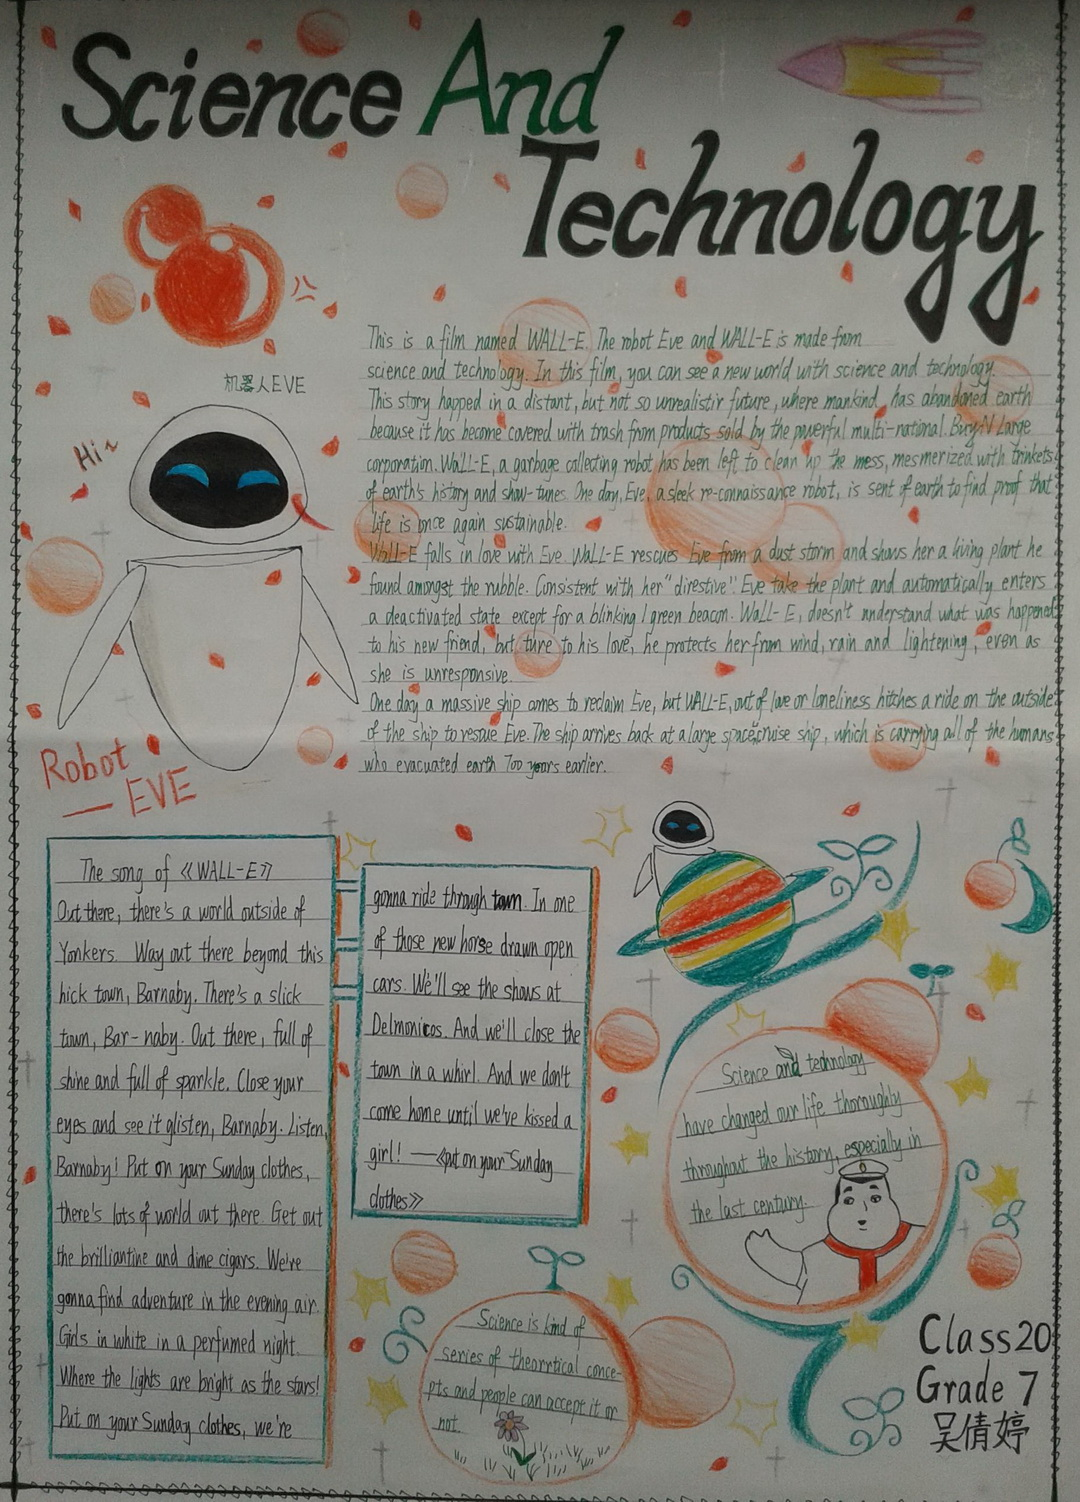 Science And Technology英语手抄报